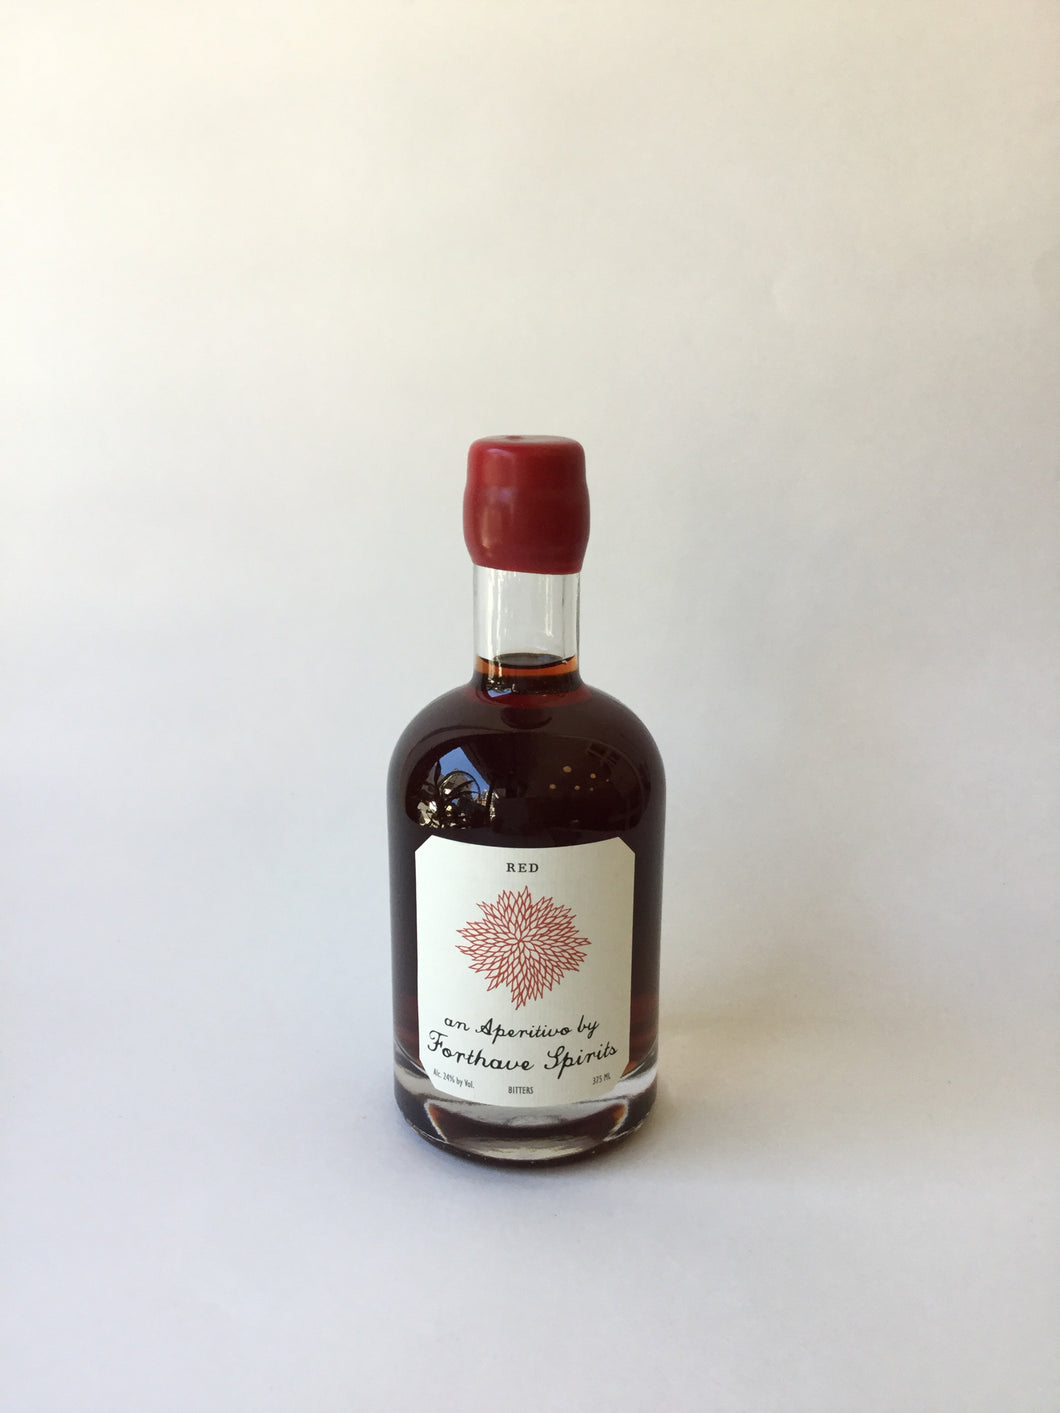 Forthave Spirits, Red Aperitivo, 375ml - Frankly Wines